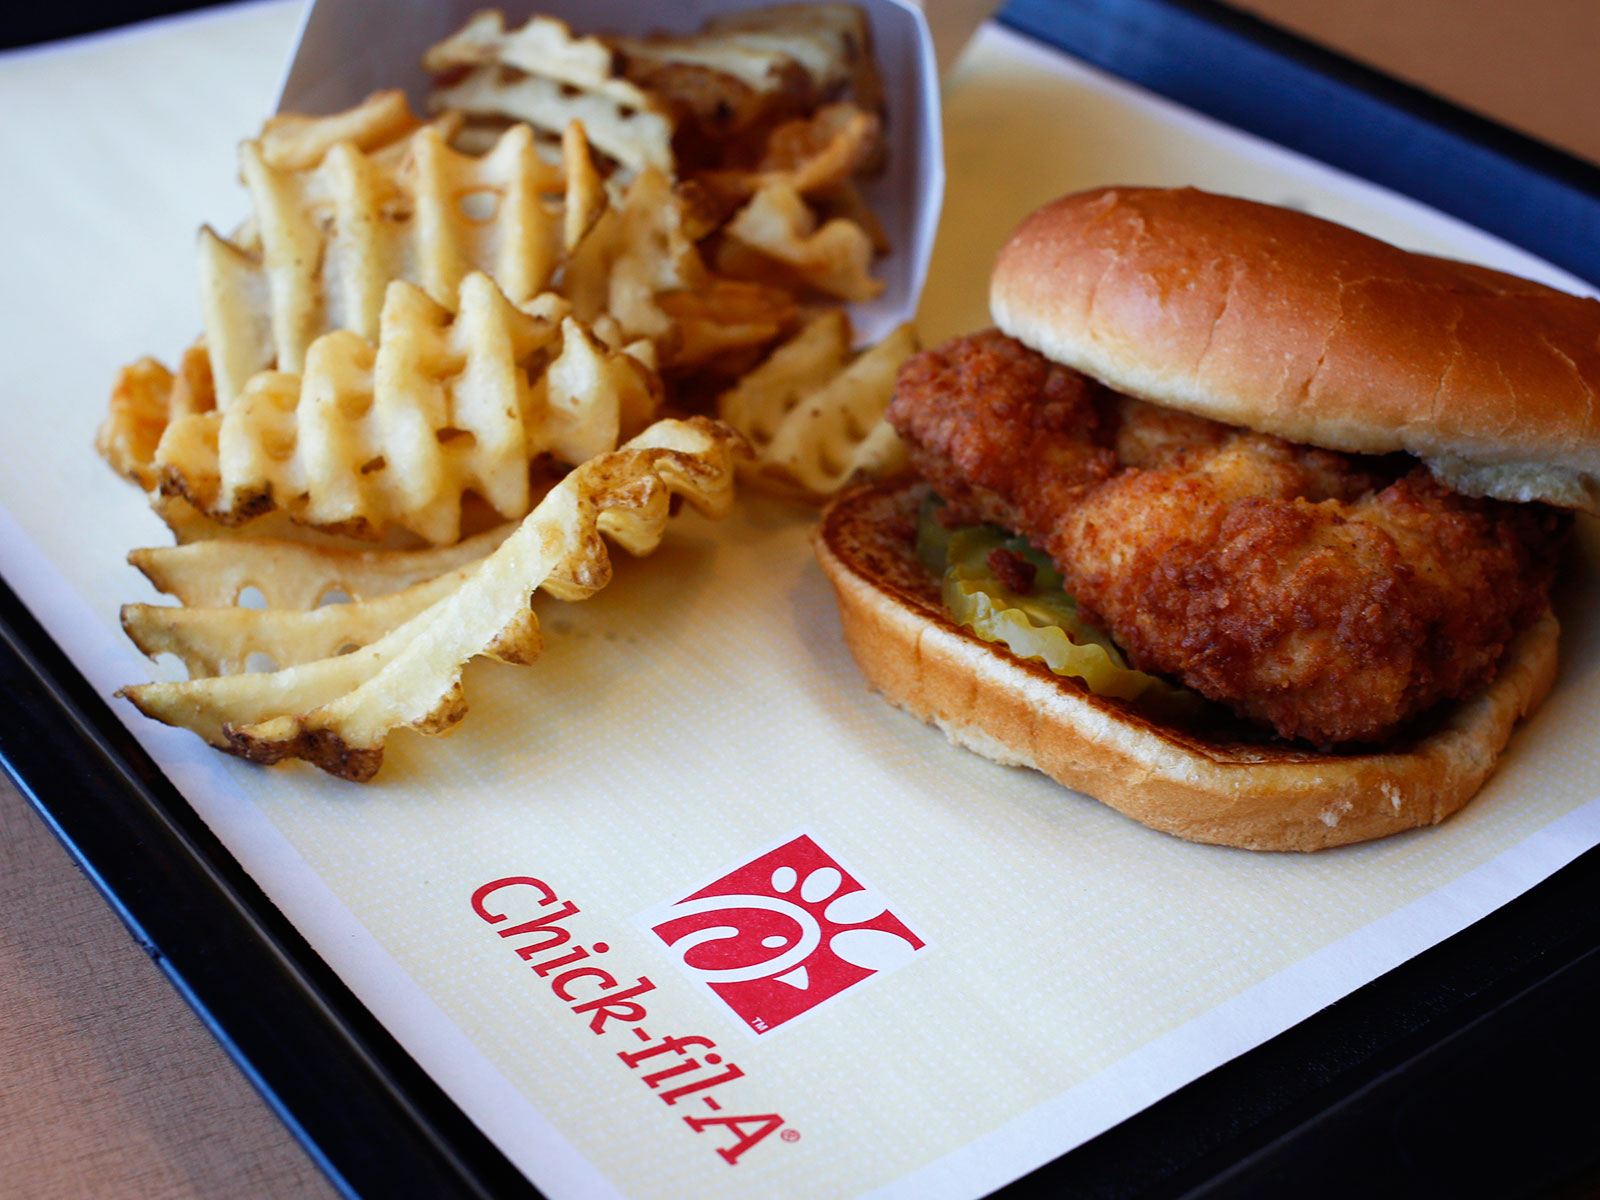 favorite fast food by state chick-fil-a